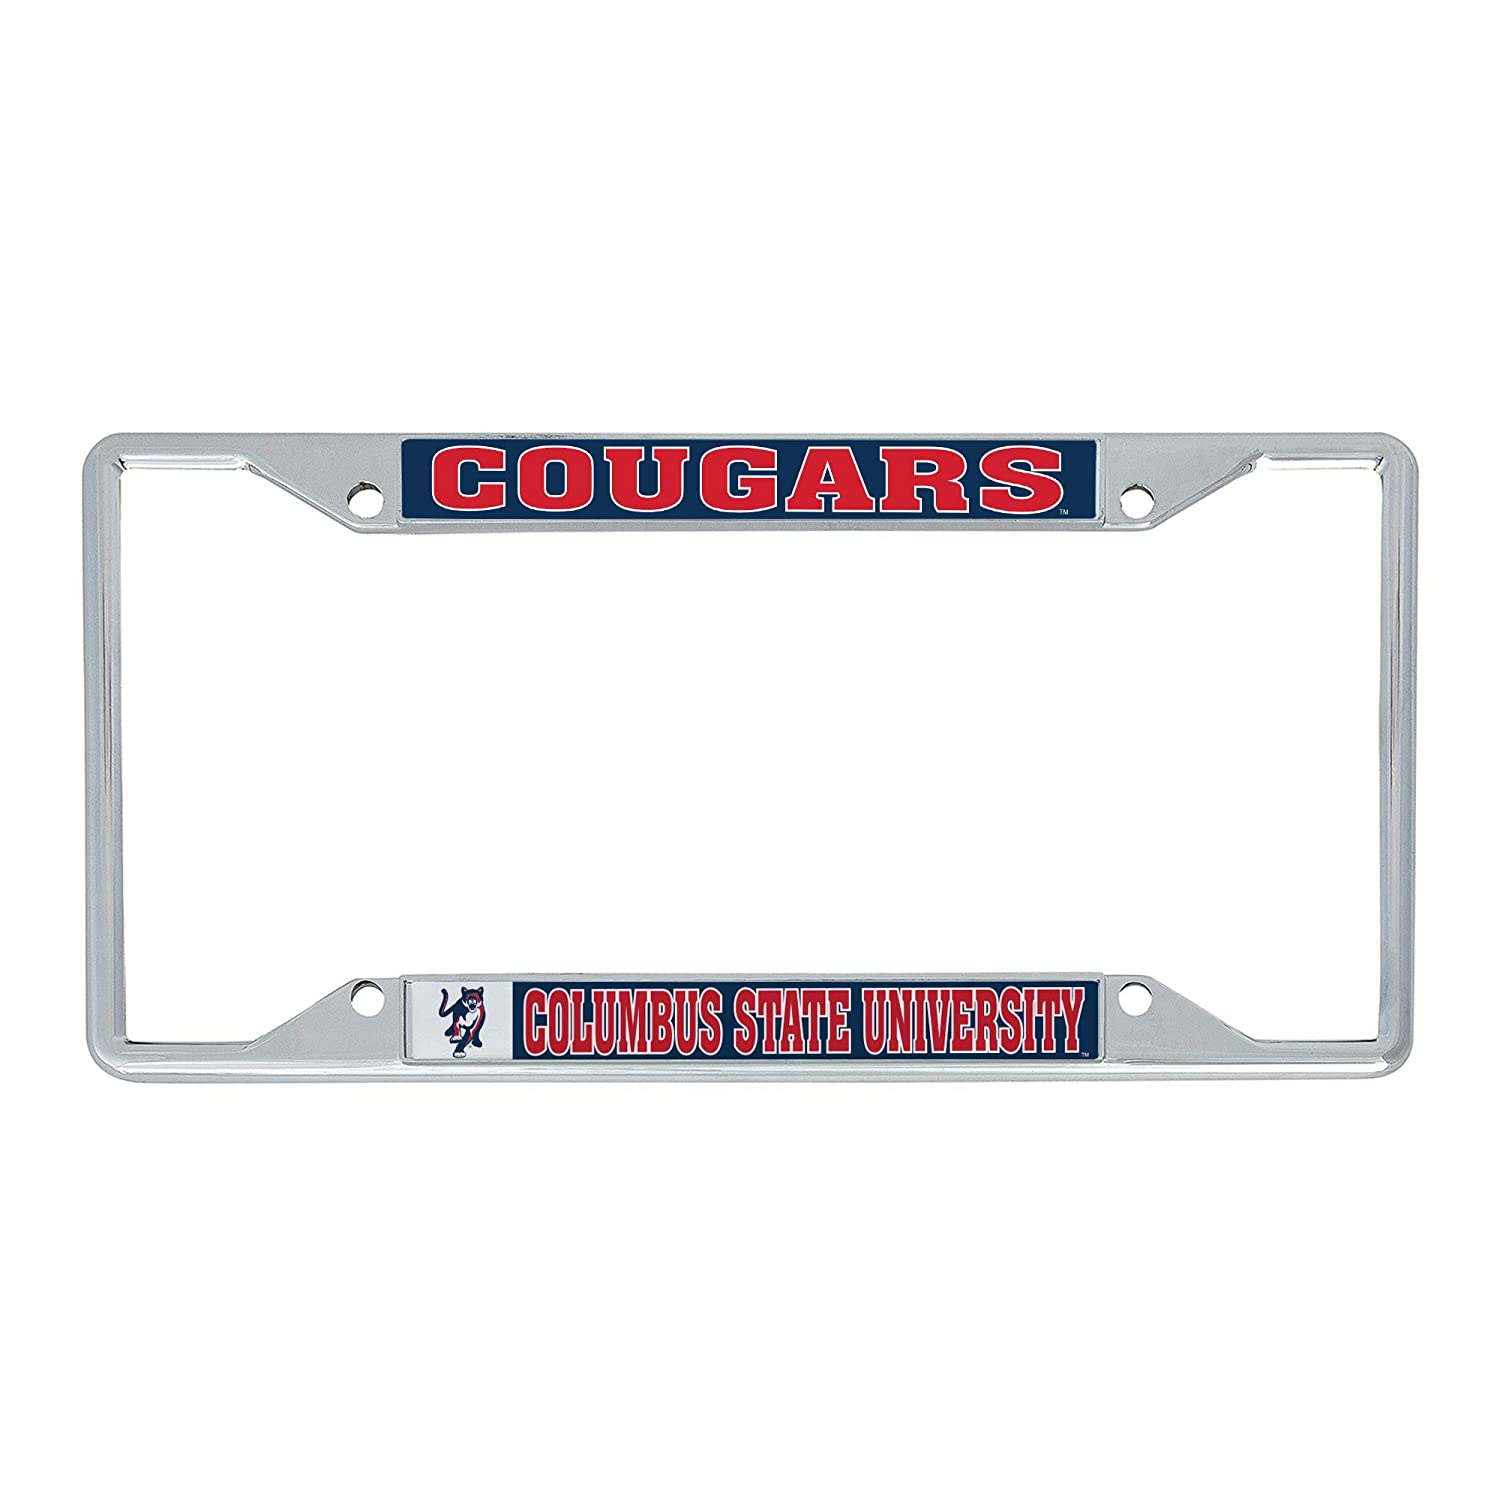 Desert Cactus Columbus State University Cougars NCAA Metal License Plate Frame for Front Back of Car Officially Licensed Mascot